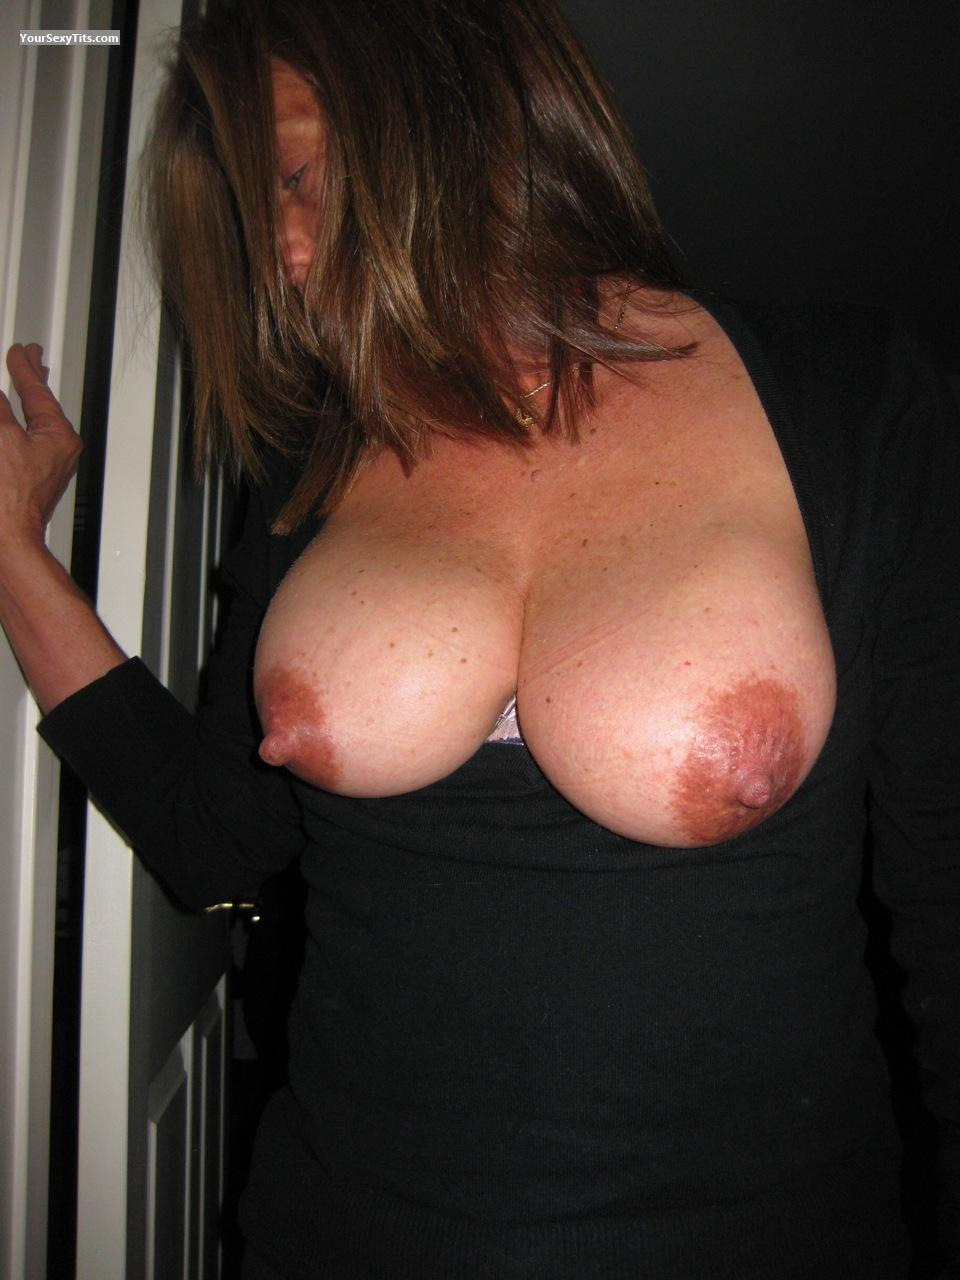 There Darlene boob pics can